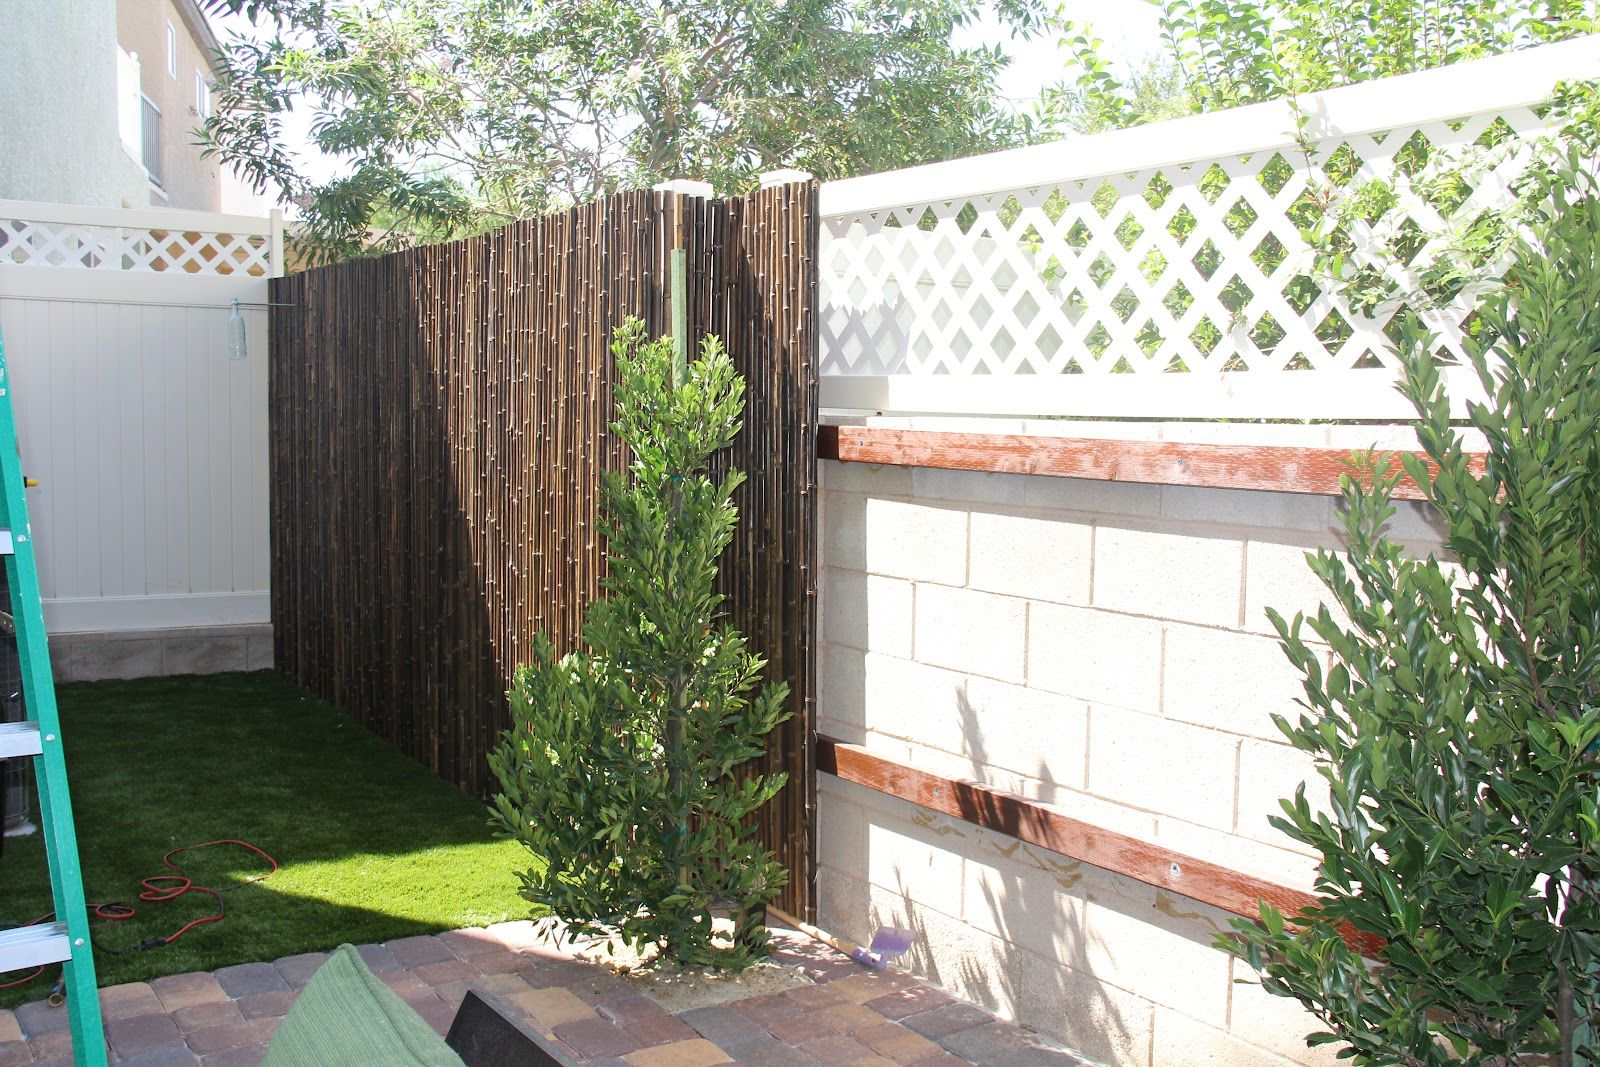 Bamboo fencing as inexpensive diy or paid option to cover - How to cover exterior cinder block walls ...